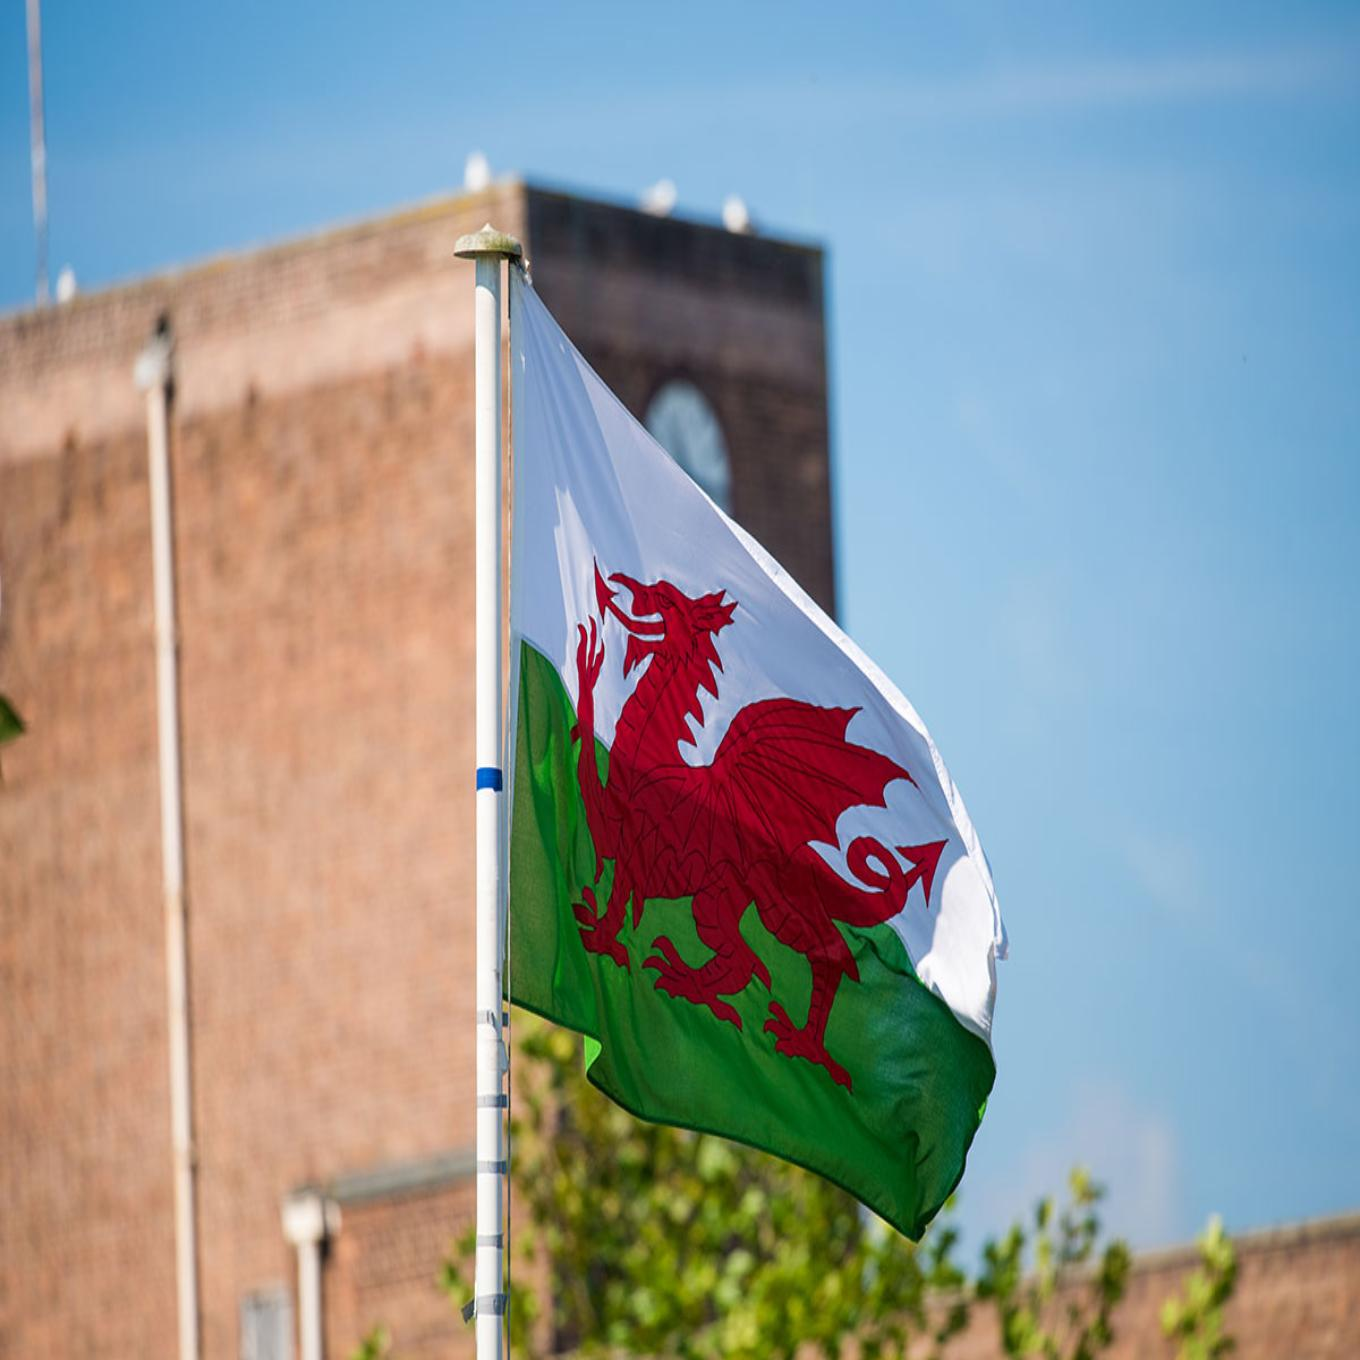 Welsh flag on campus